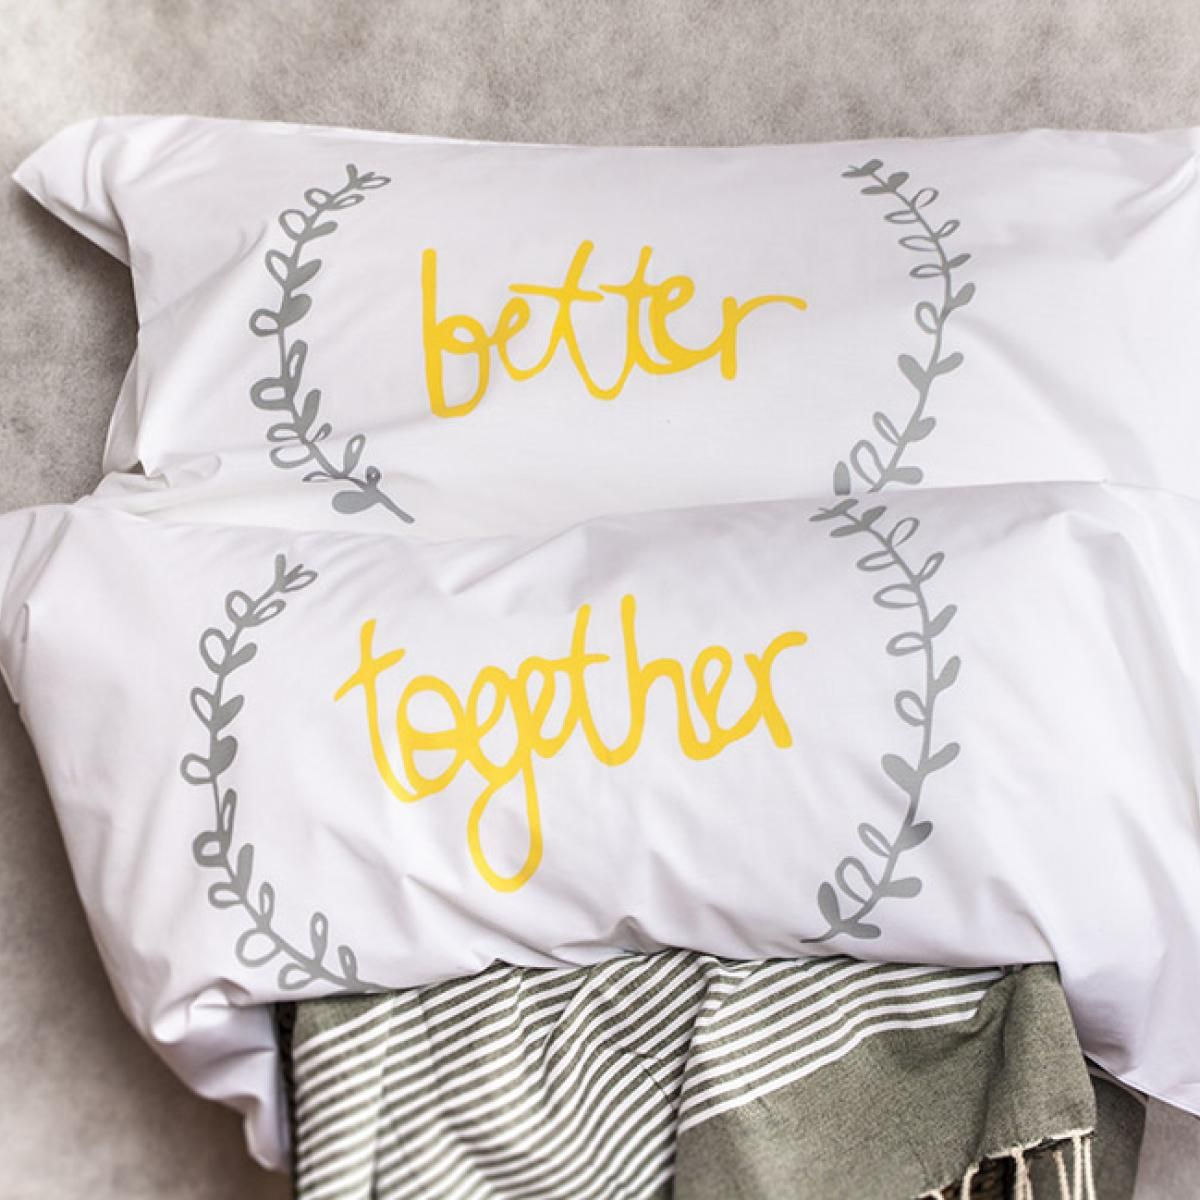 His and Hers Screenprinted Pillow Cases NOOKROAD AUD 35